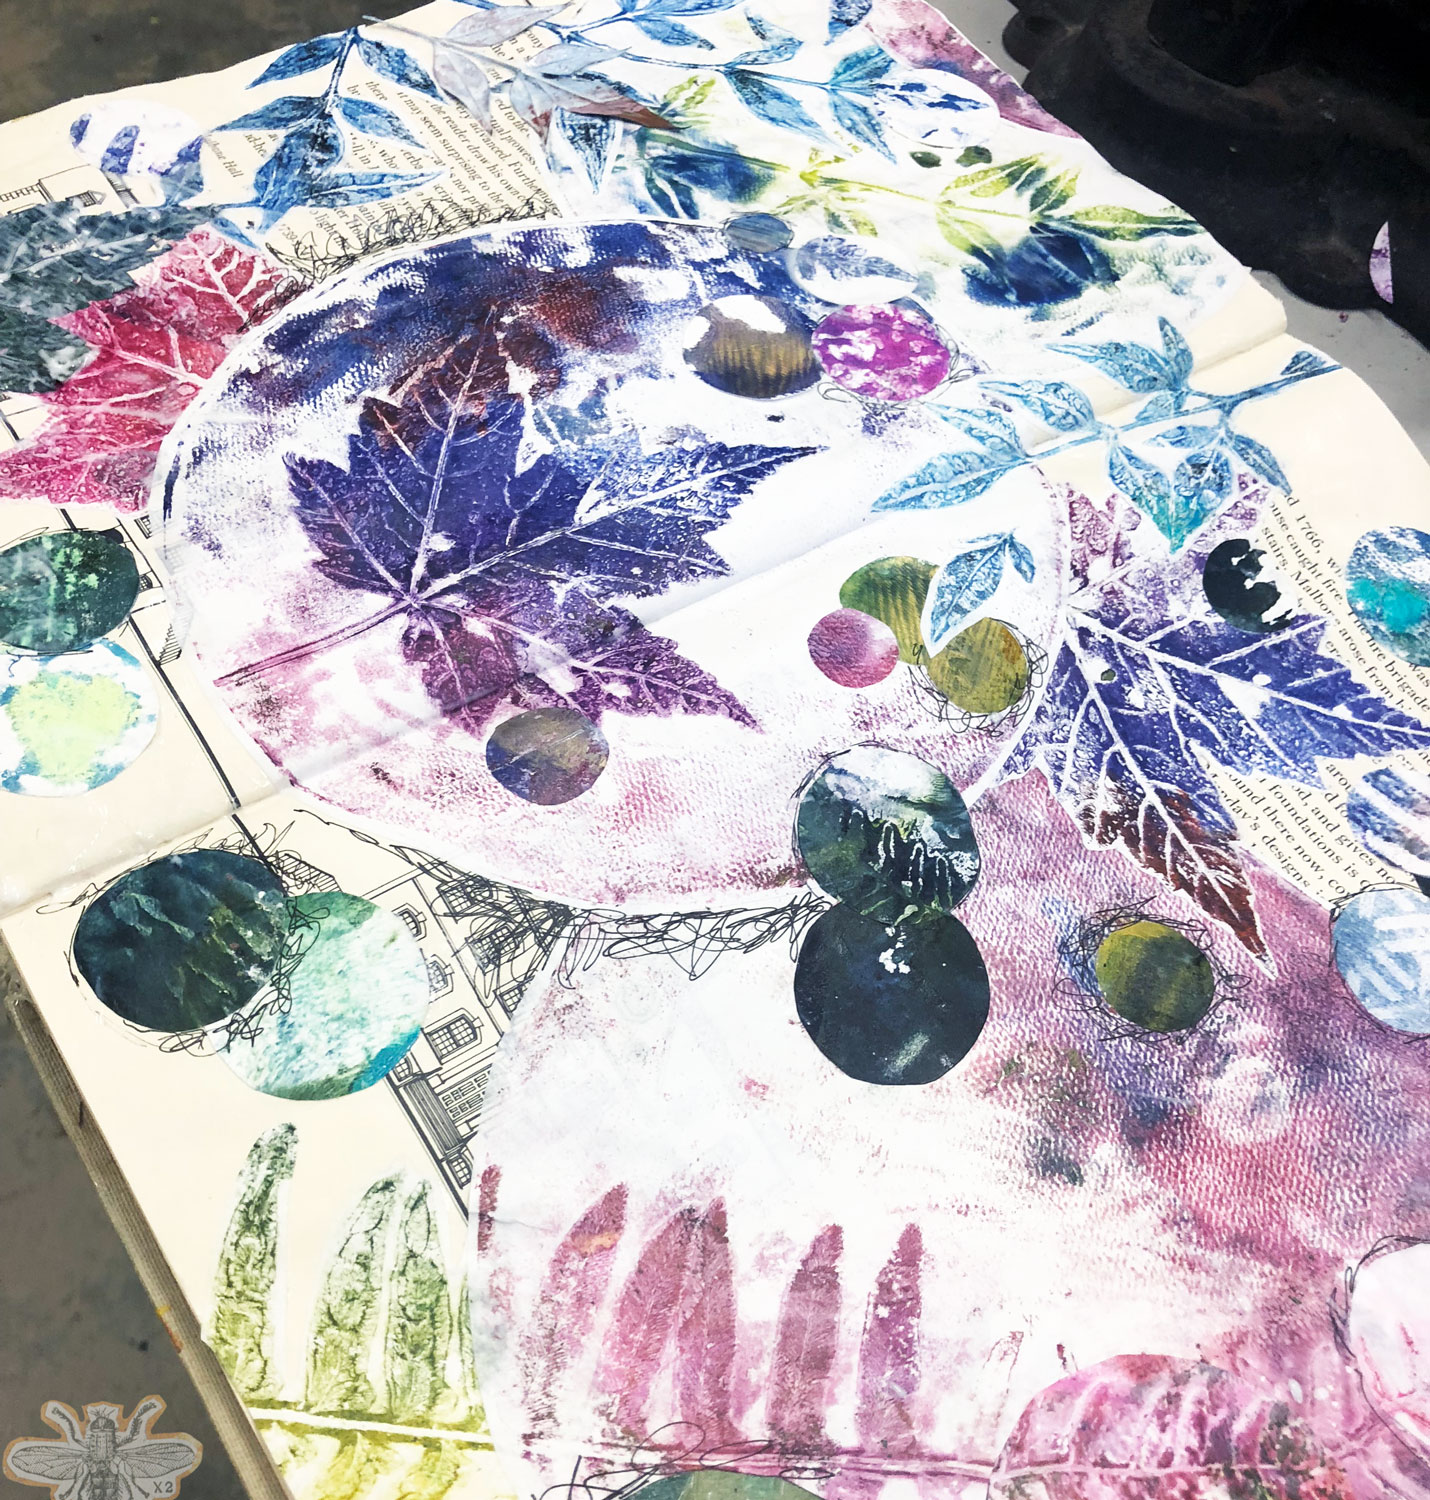 How ghost prints and gelli prints can be collaged into a visual journal.